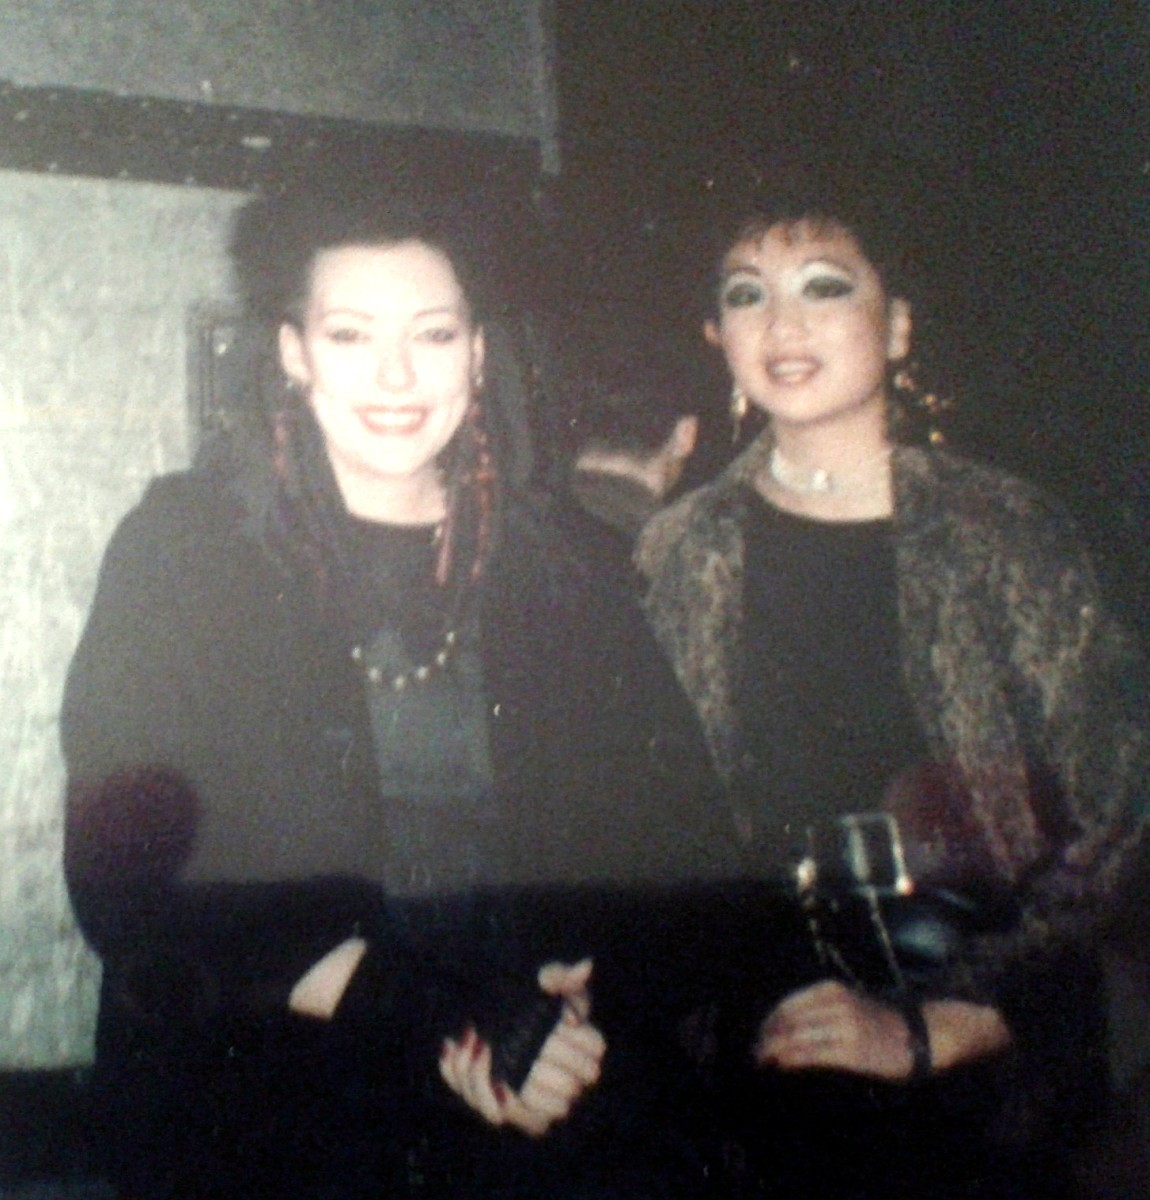 Me (on the left) with my friend Nila Myin in the mid-1980s.